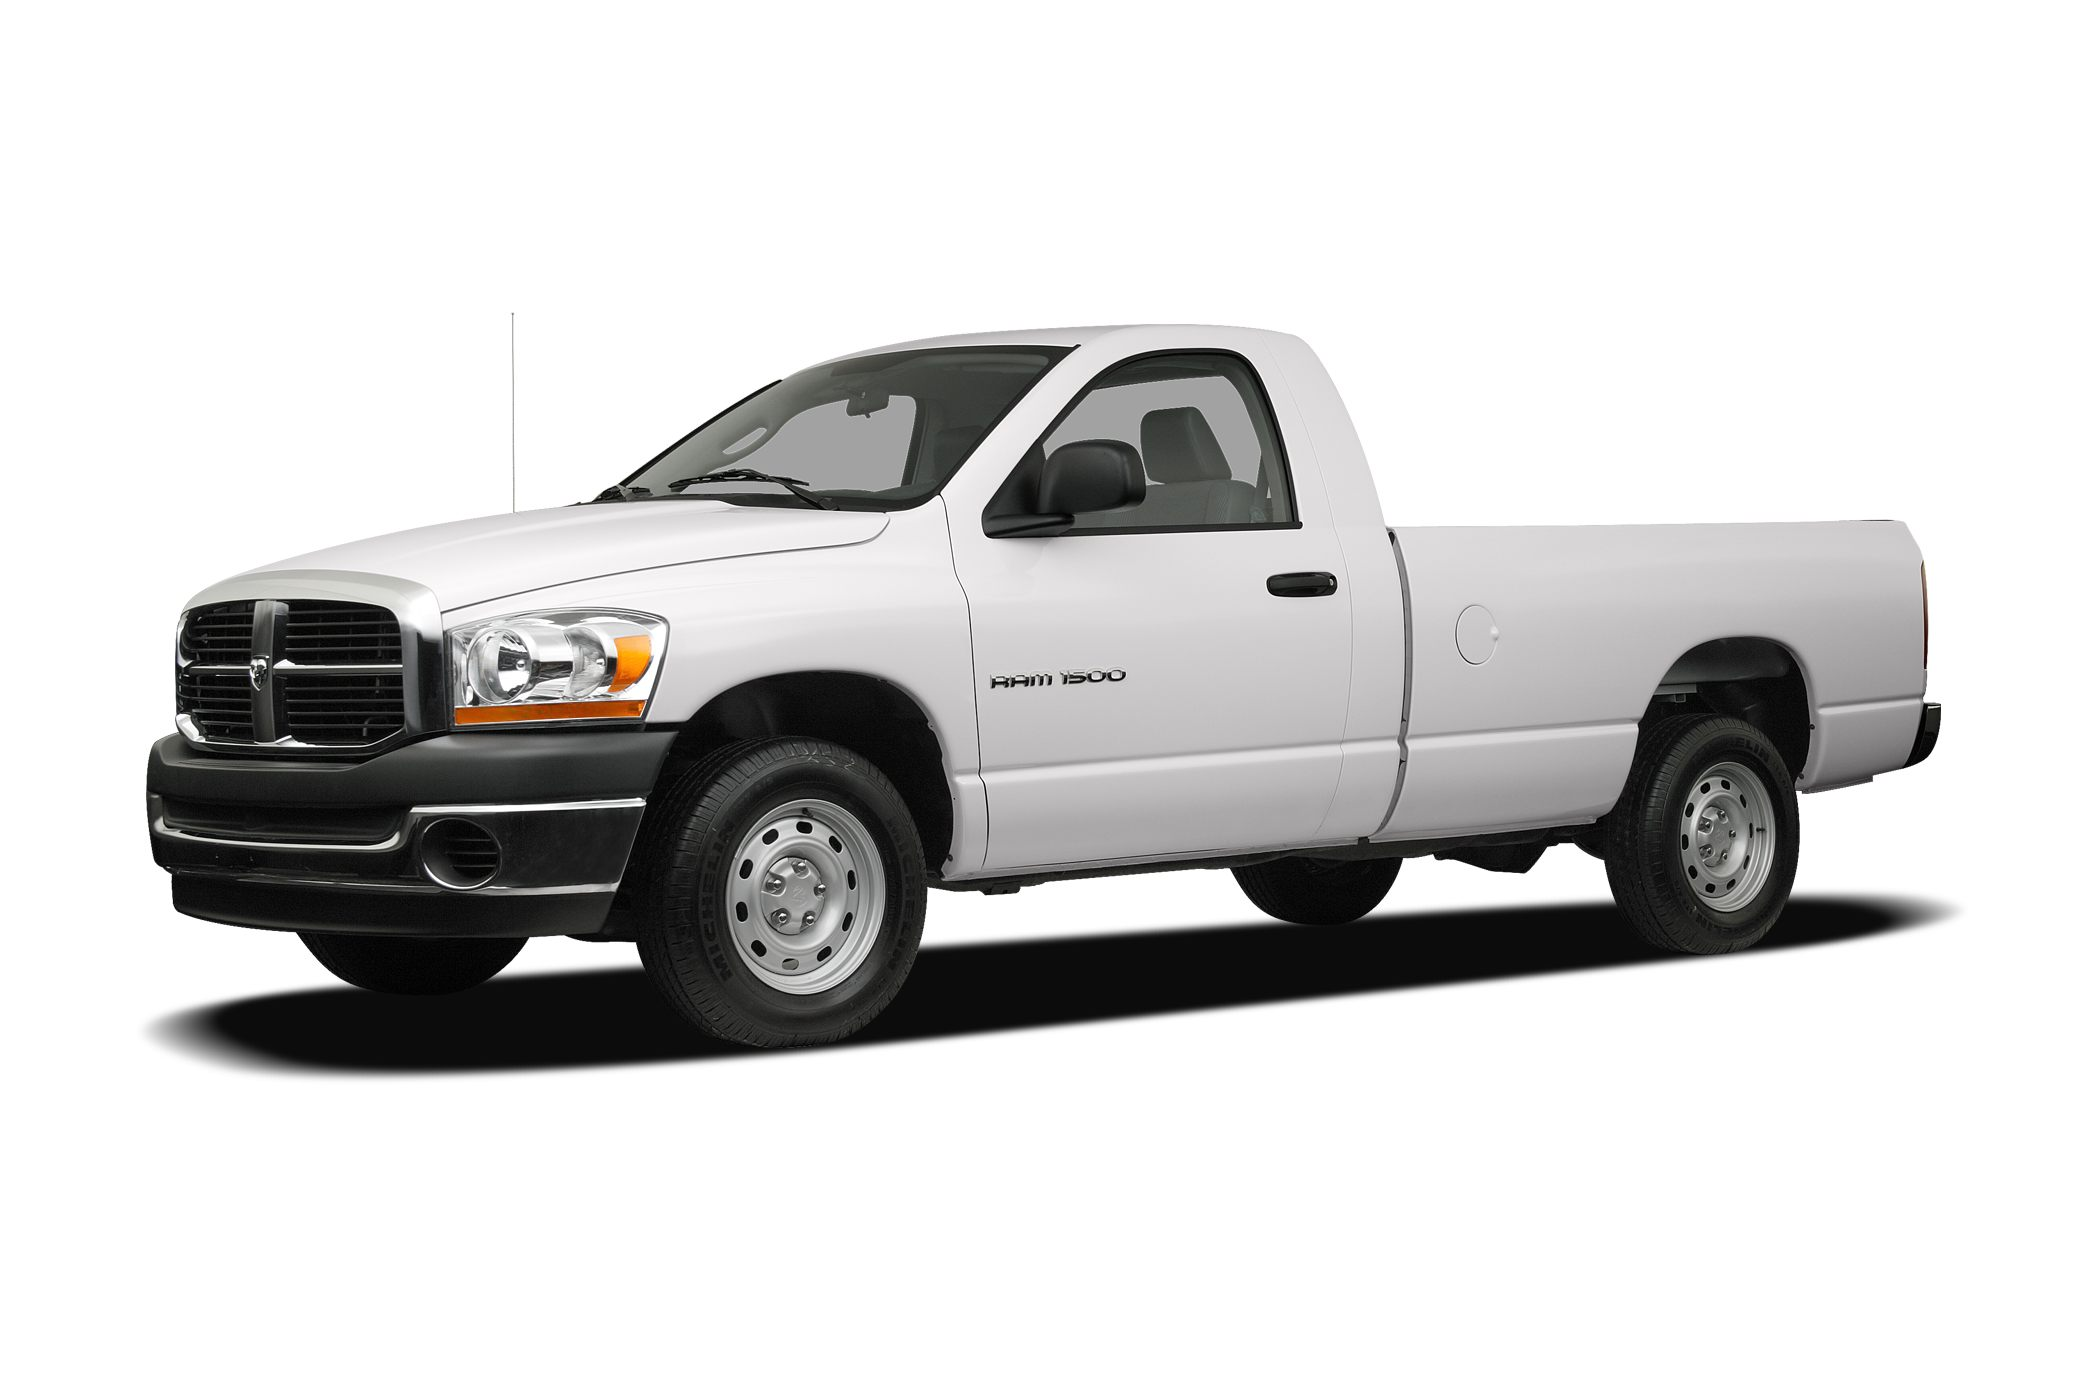 2008 Dodge Ram 1500 SLT Crew Cab Pickup for sale in Garner for $15,988 with 102,393 miles.